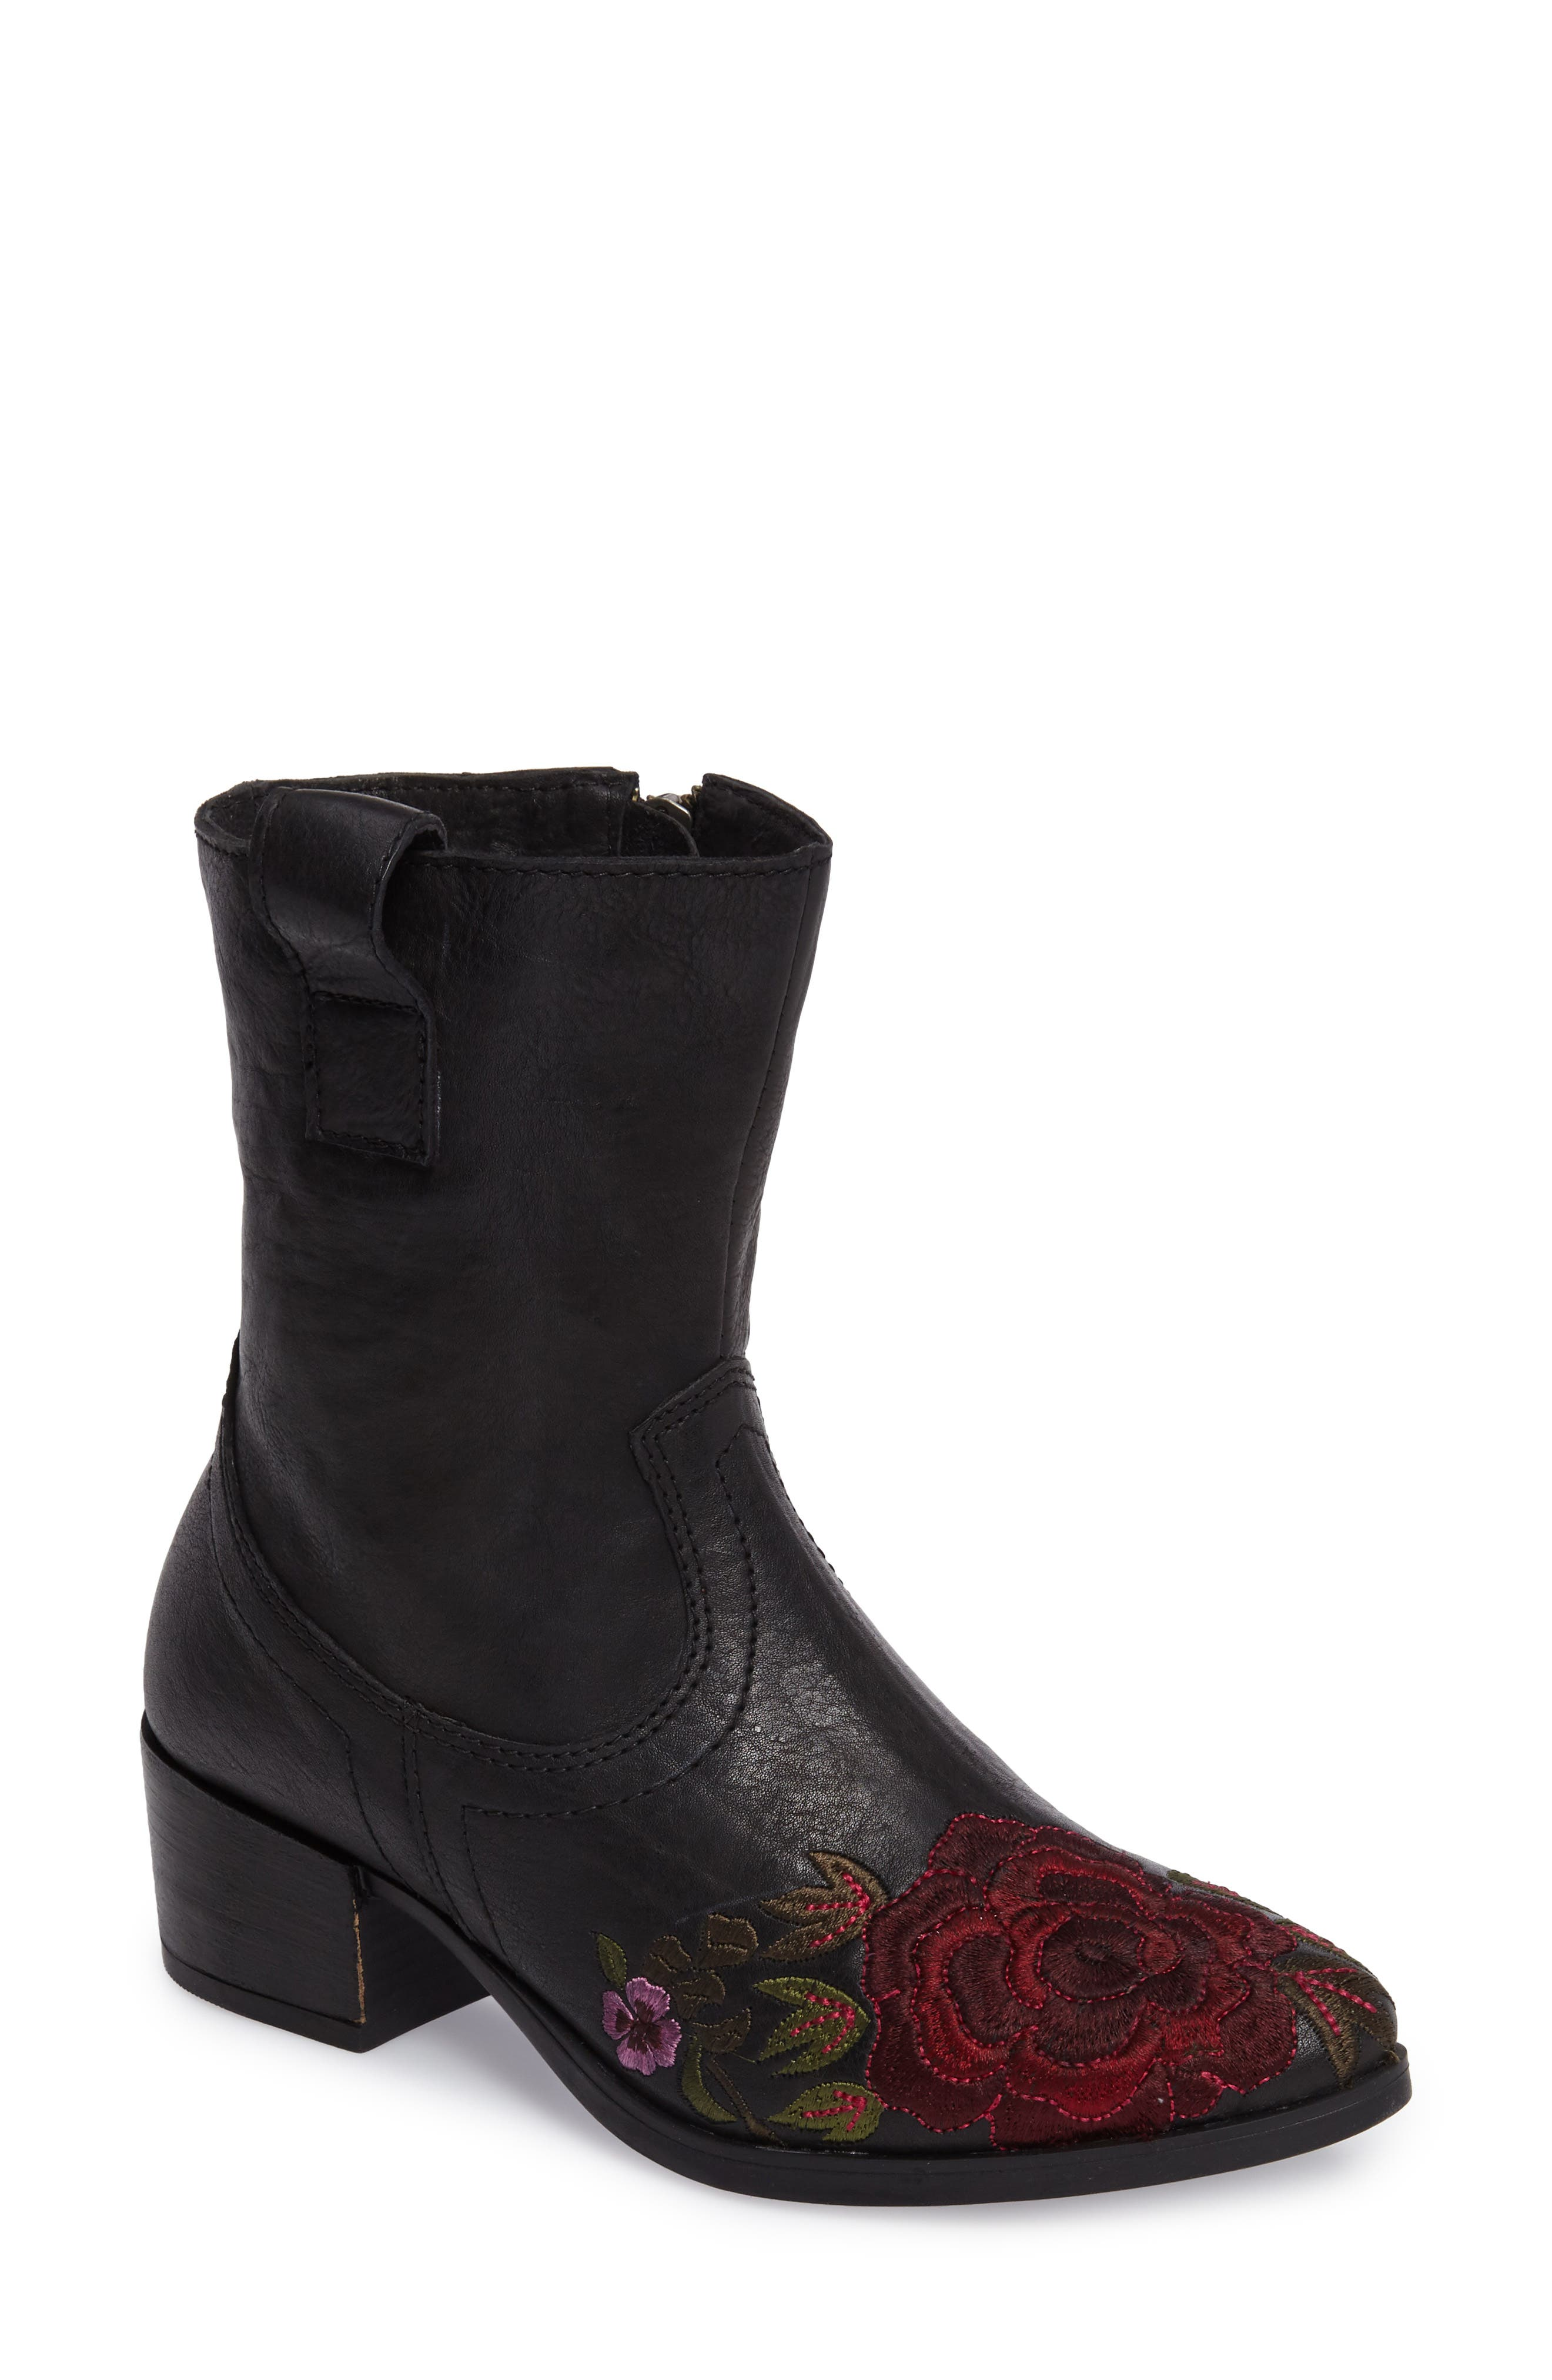 Shallot Floral Embroidered Bootie,                         Main,                         color, Black Leather